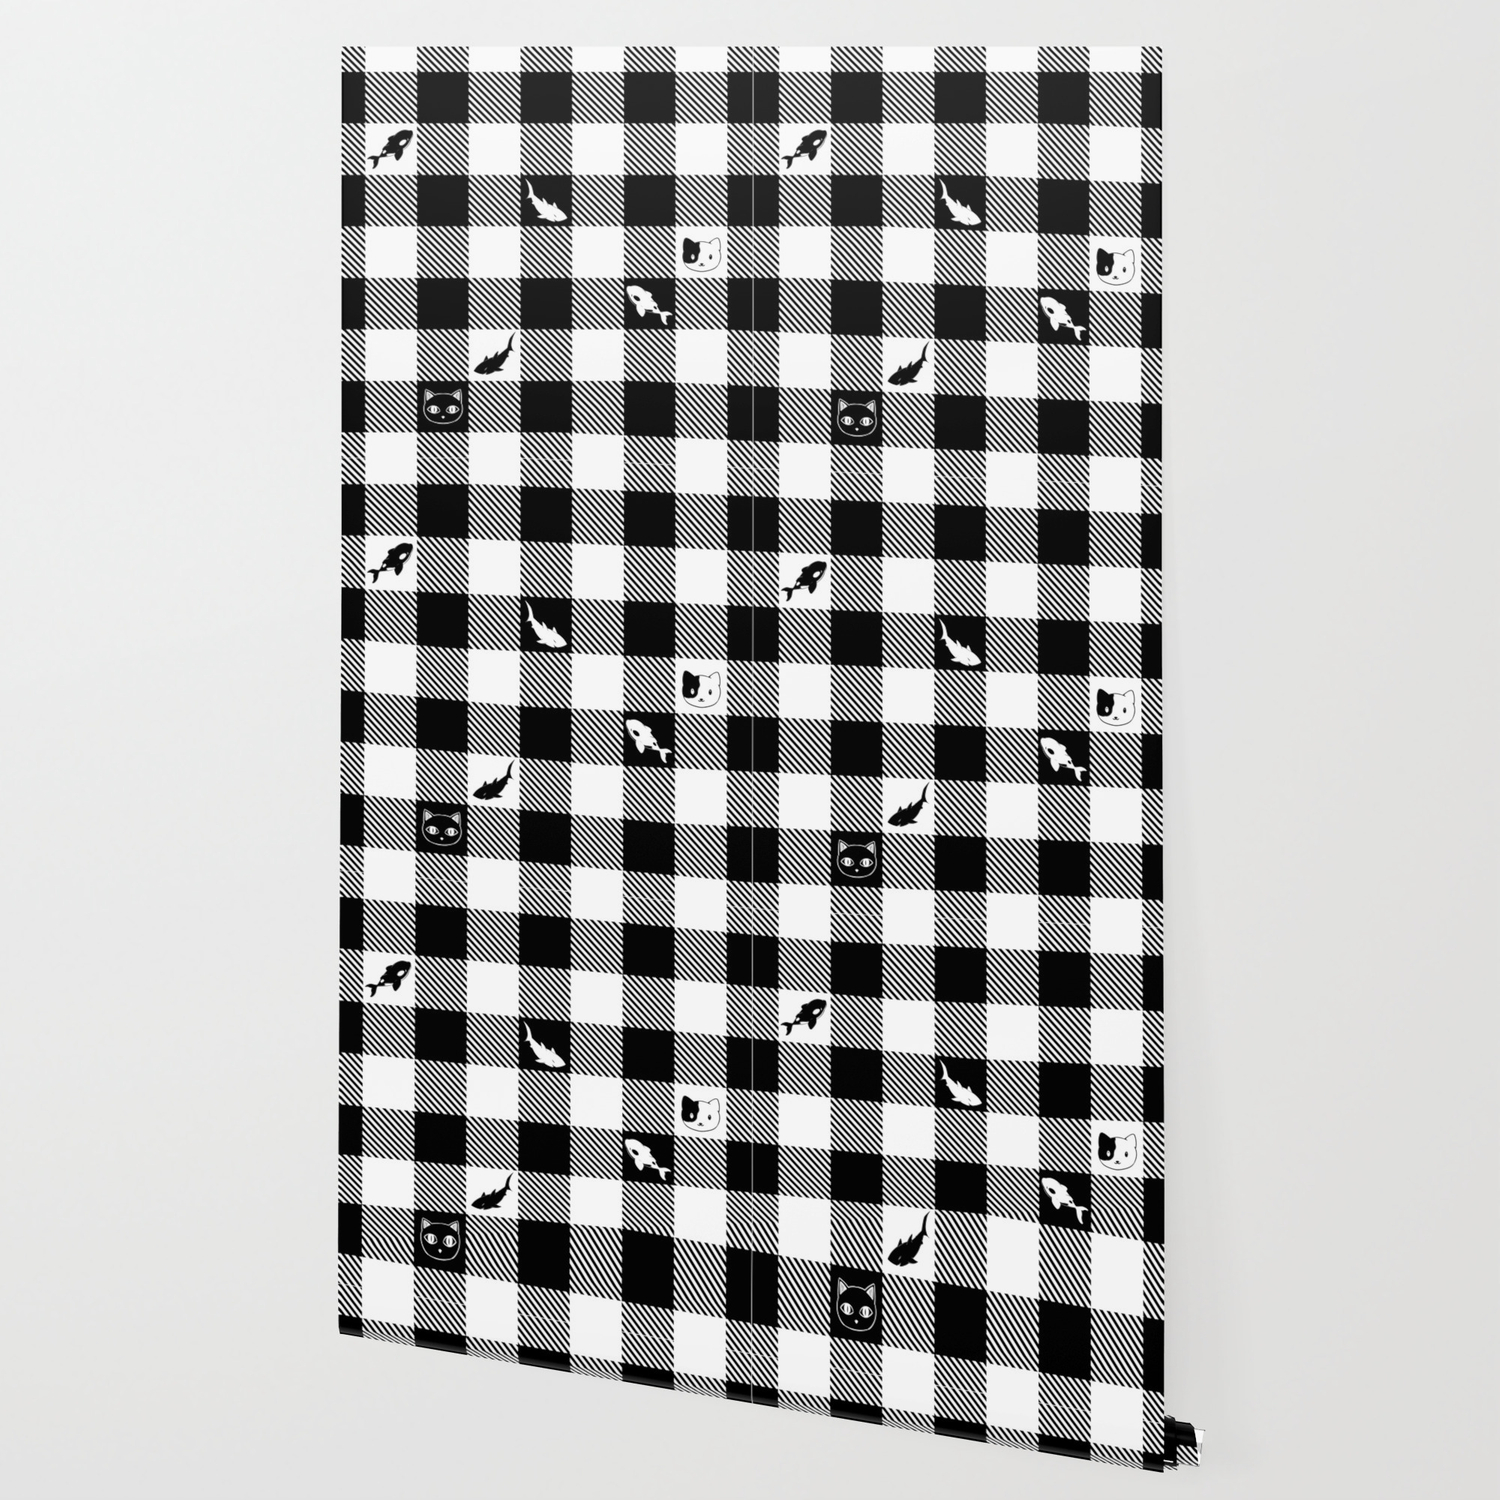 Black And White Checkered Animals Wallpaper By Bloomejasmine